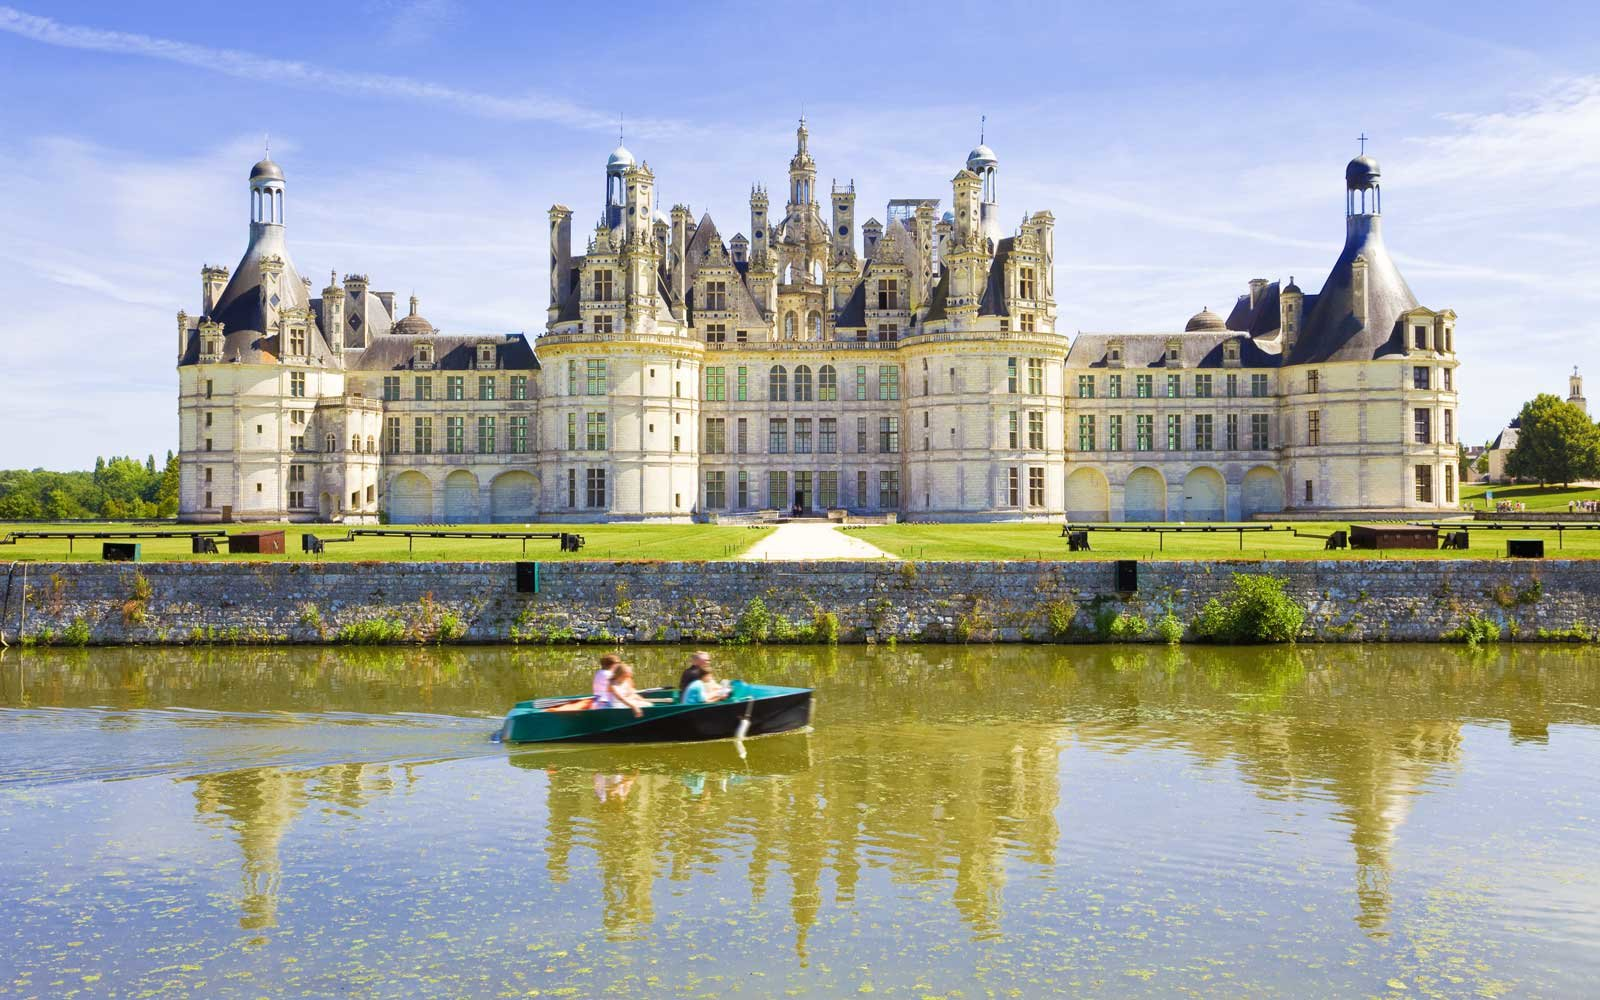 castles and wine make the french countryside the most exquisite